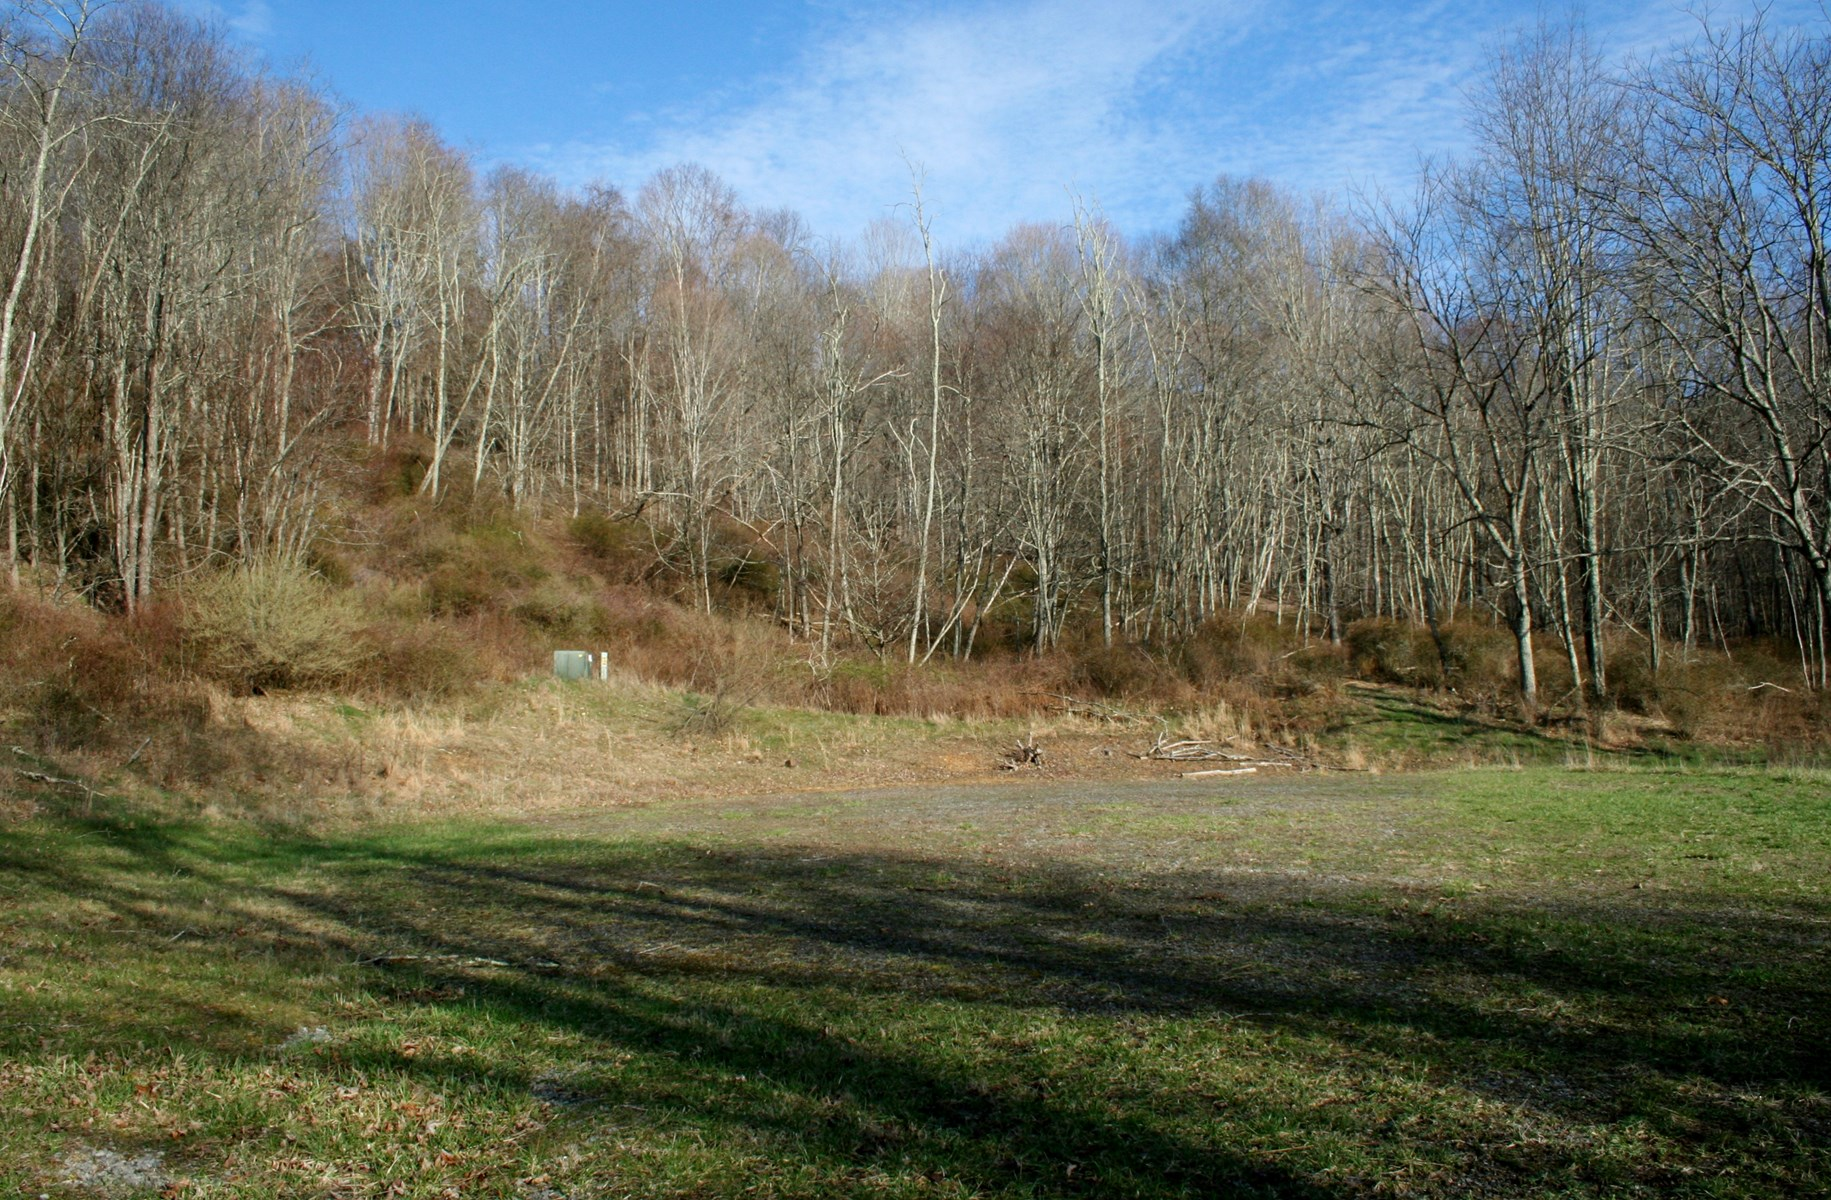 LOT 9, LOWRY LOW HILLS